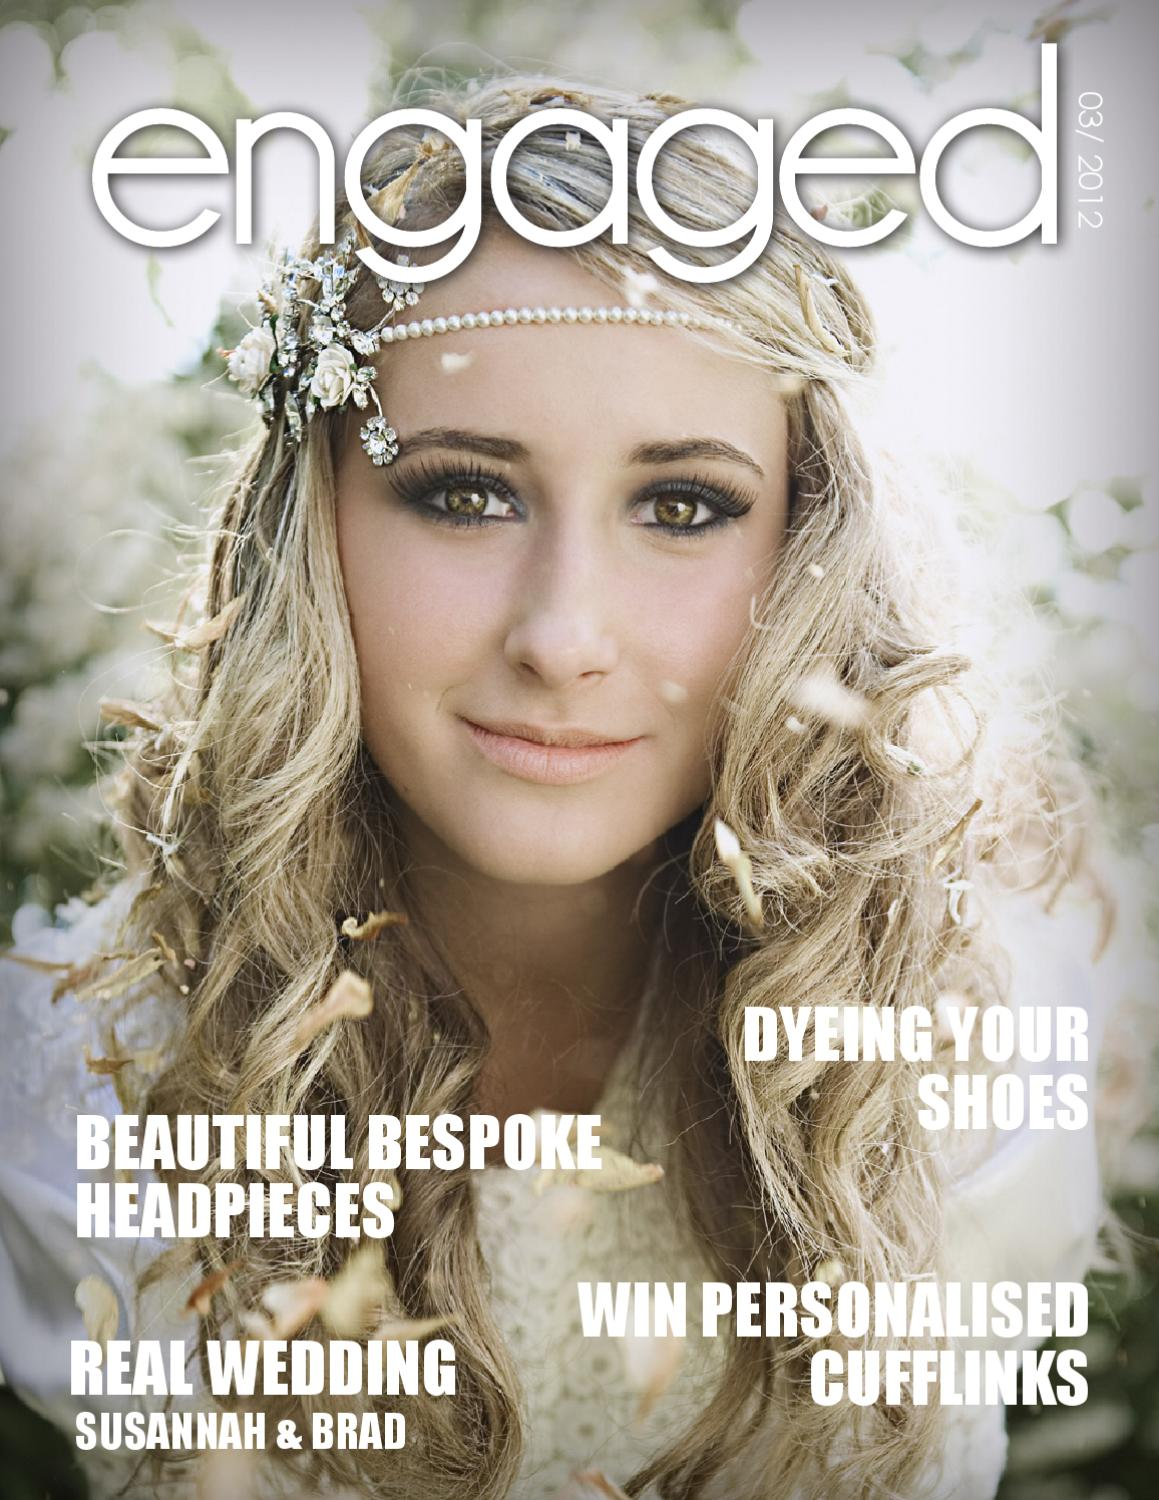 Wedding hair accessories christchurch - Engaged Wedding Magazine March 2012 By Hamilton Media Limited Issuu